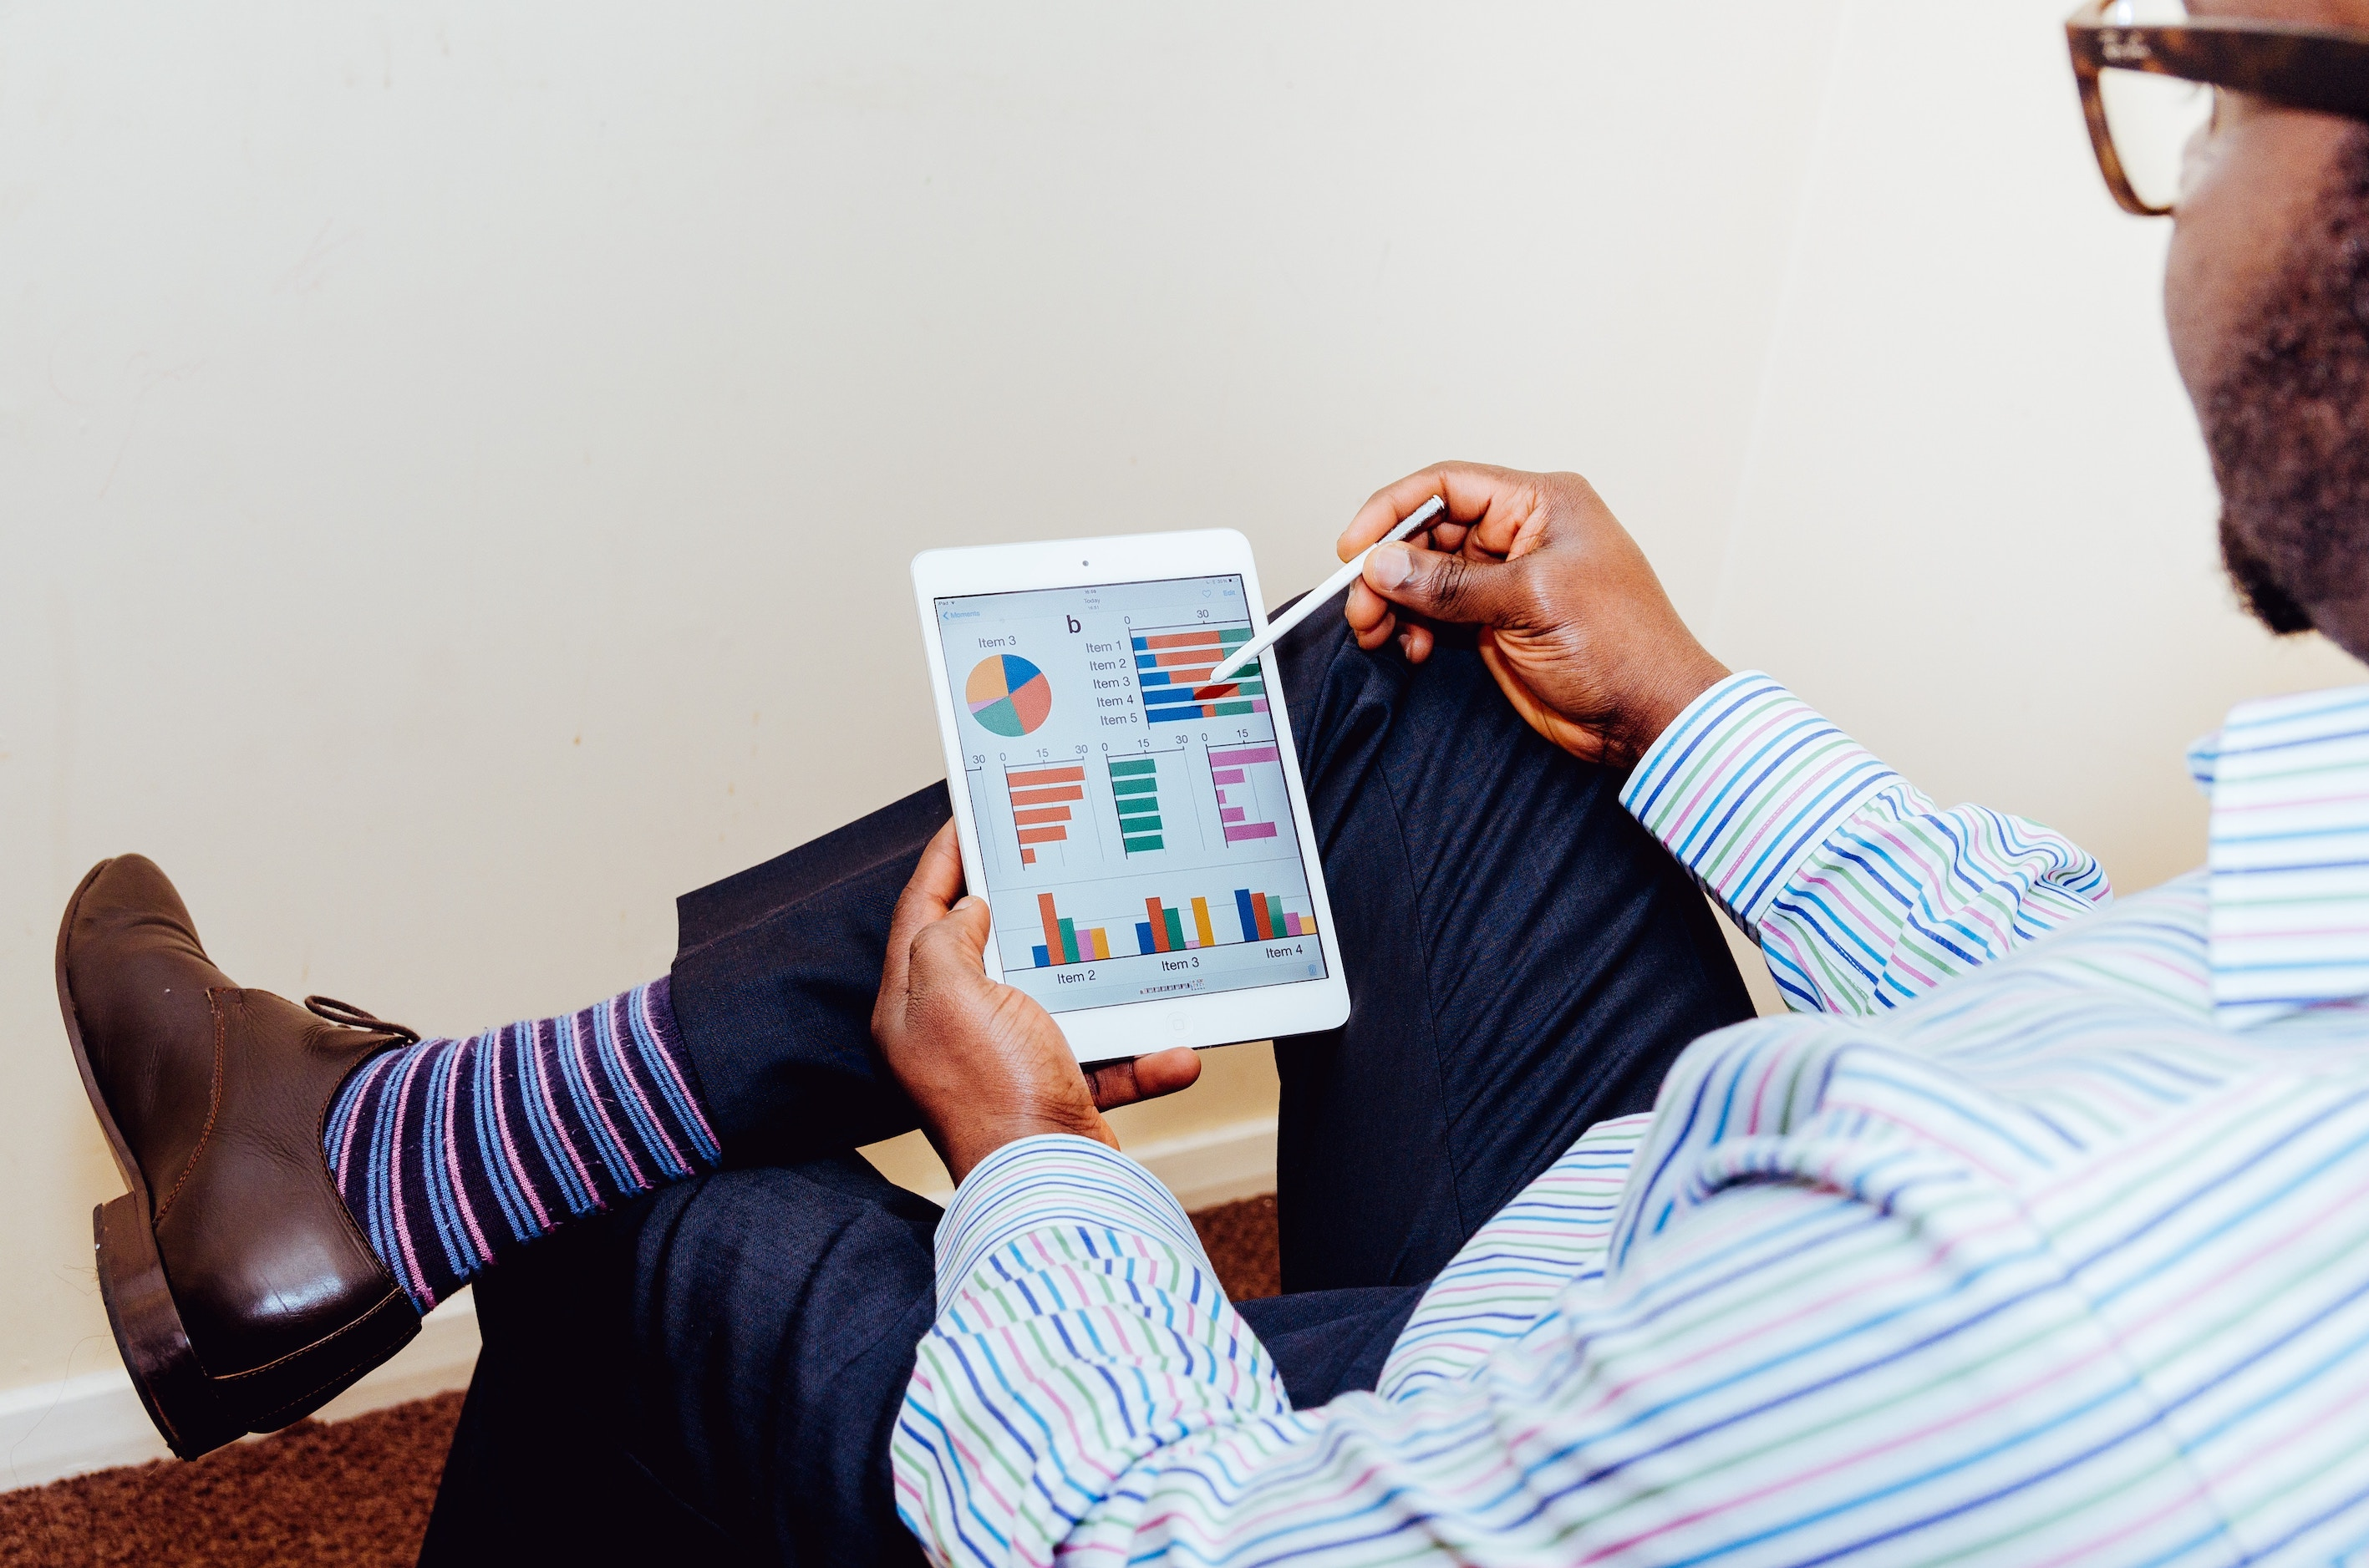 5 Ways Your Brand Can (and Should) Use Big Data